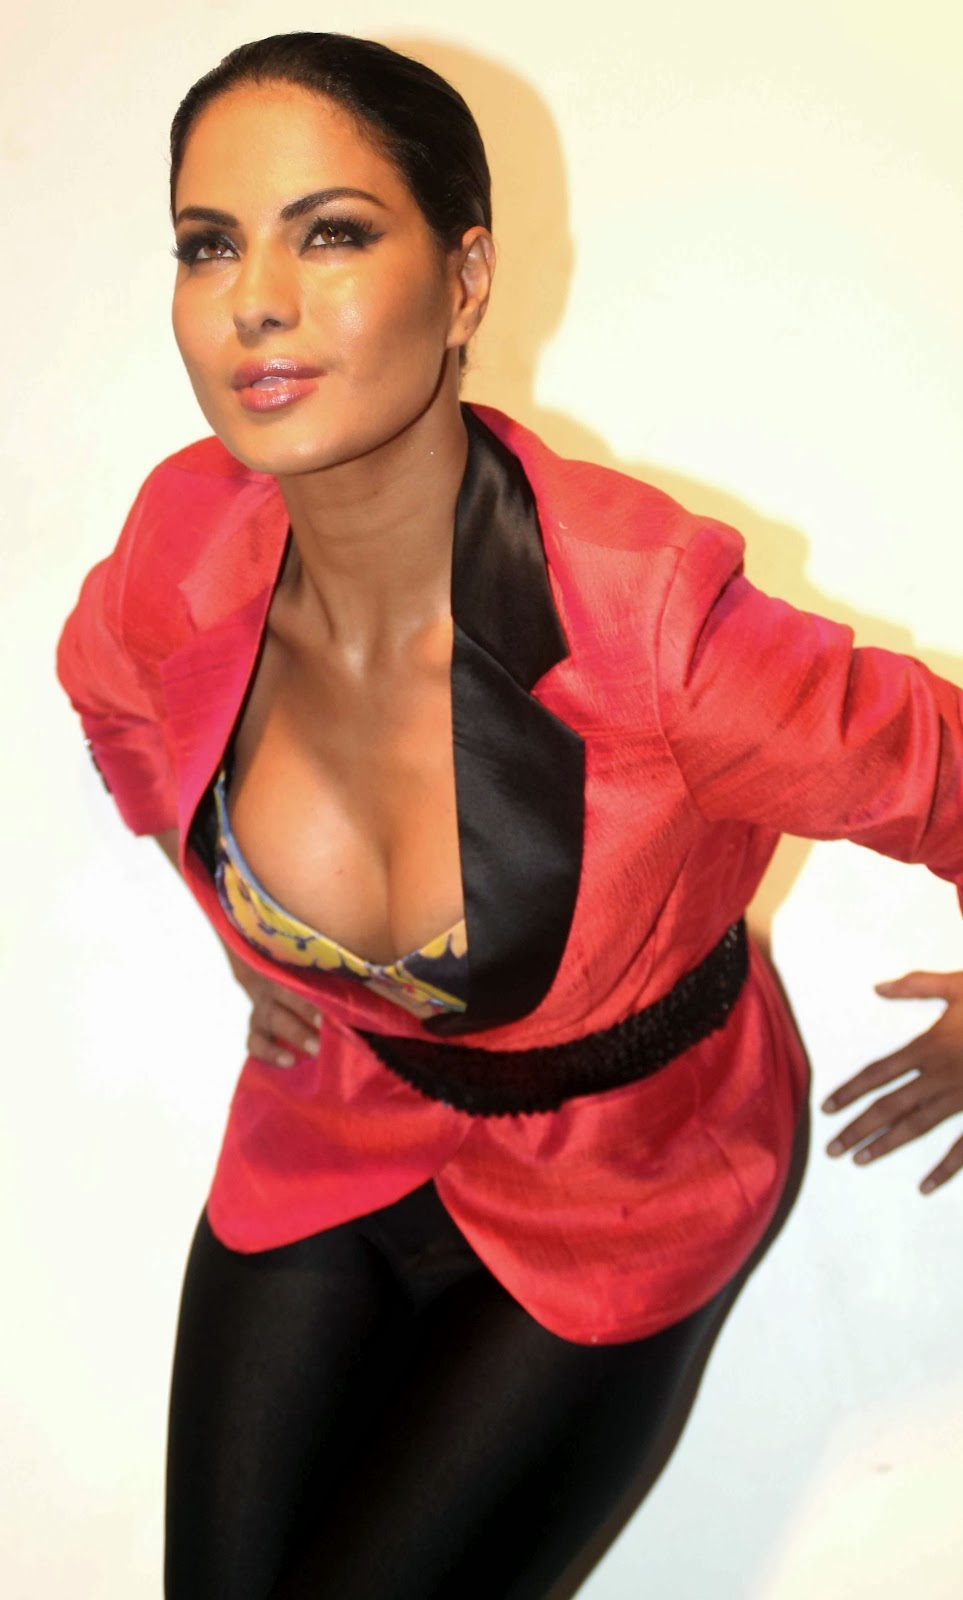 Bipasha Basu Veena Malik Hot Images Free Download-1889